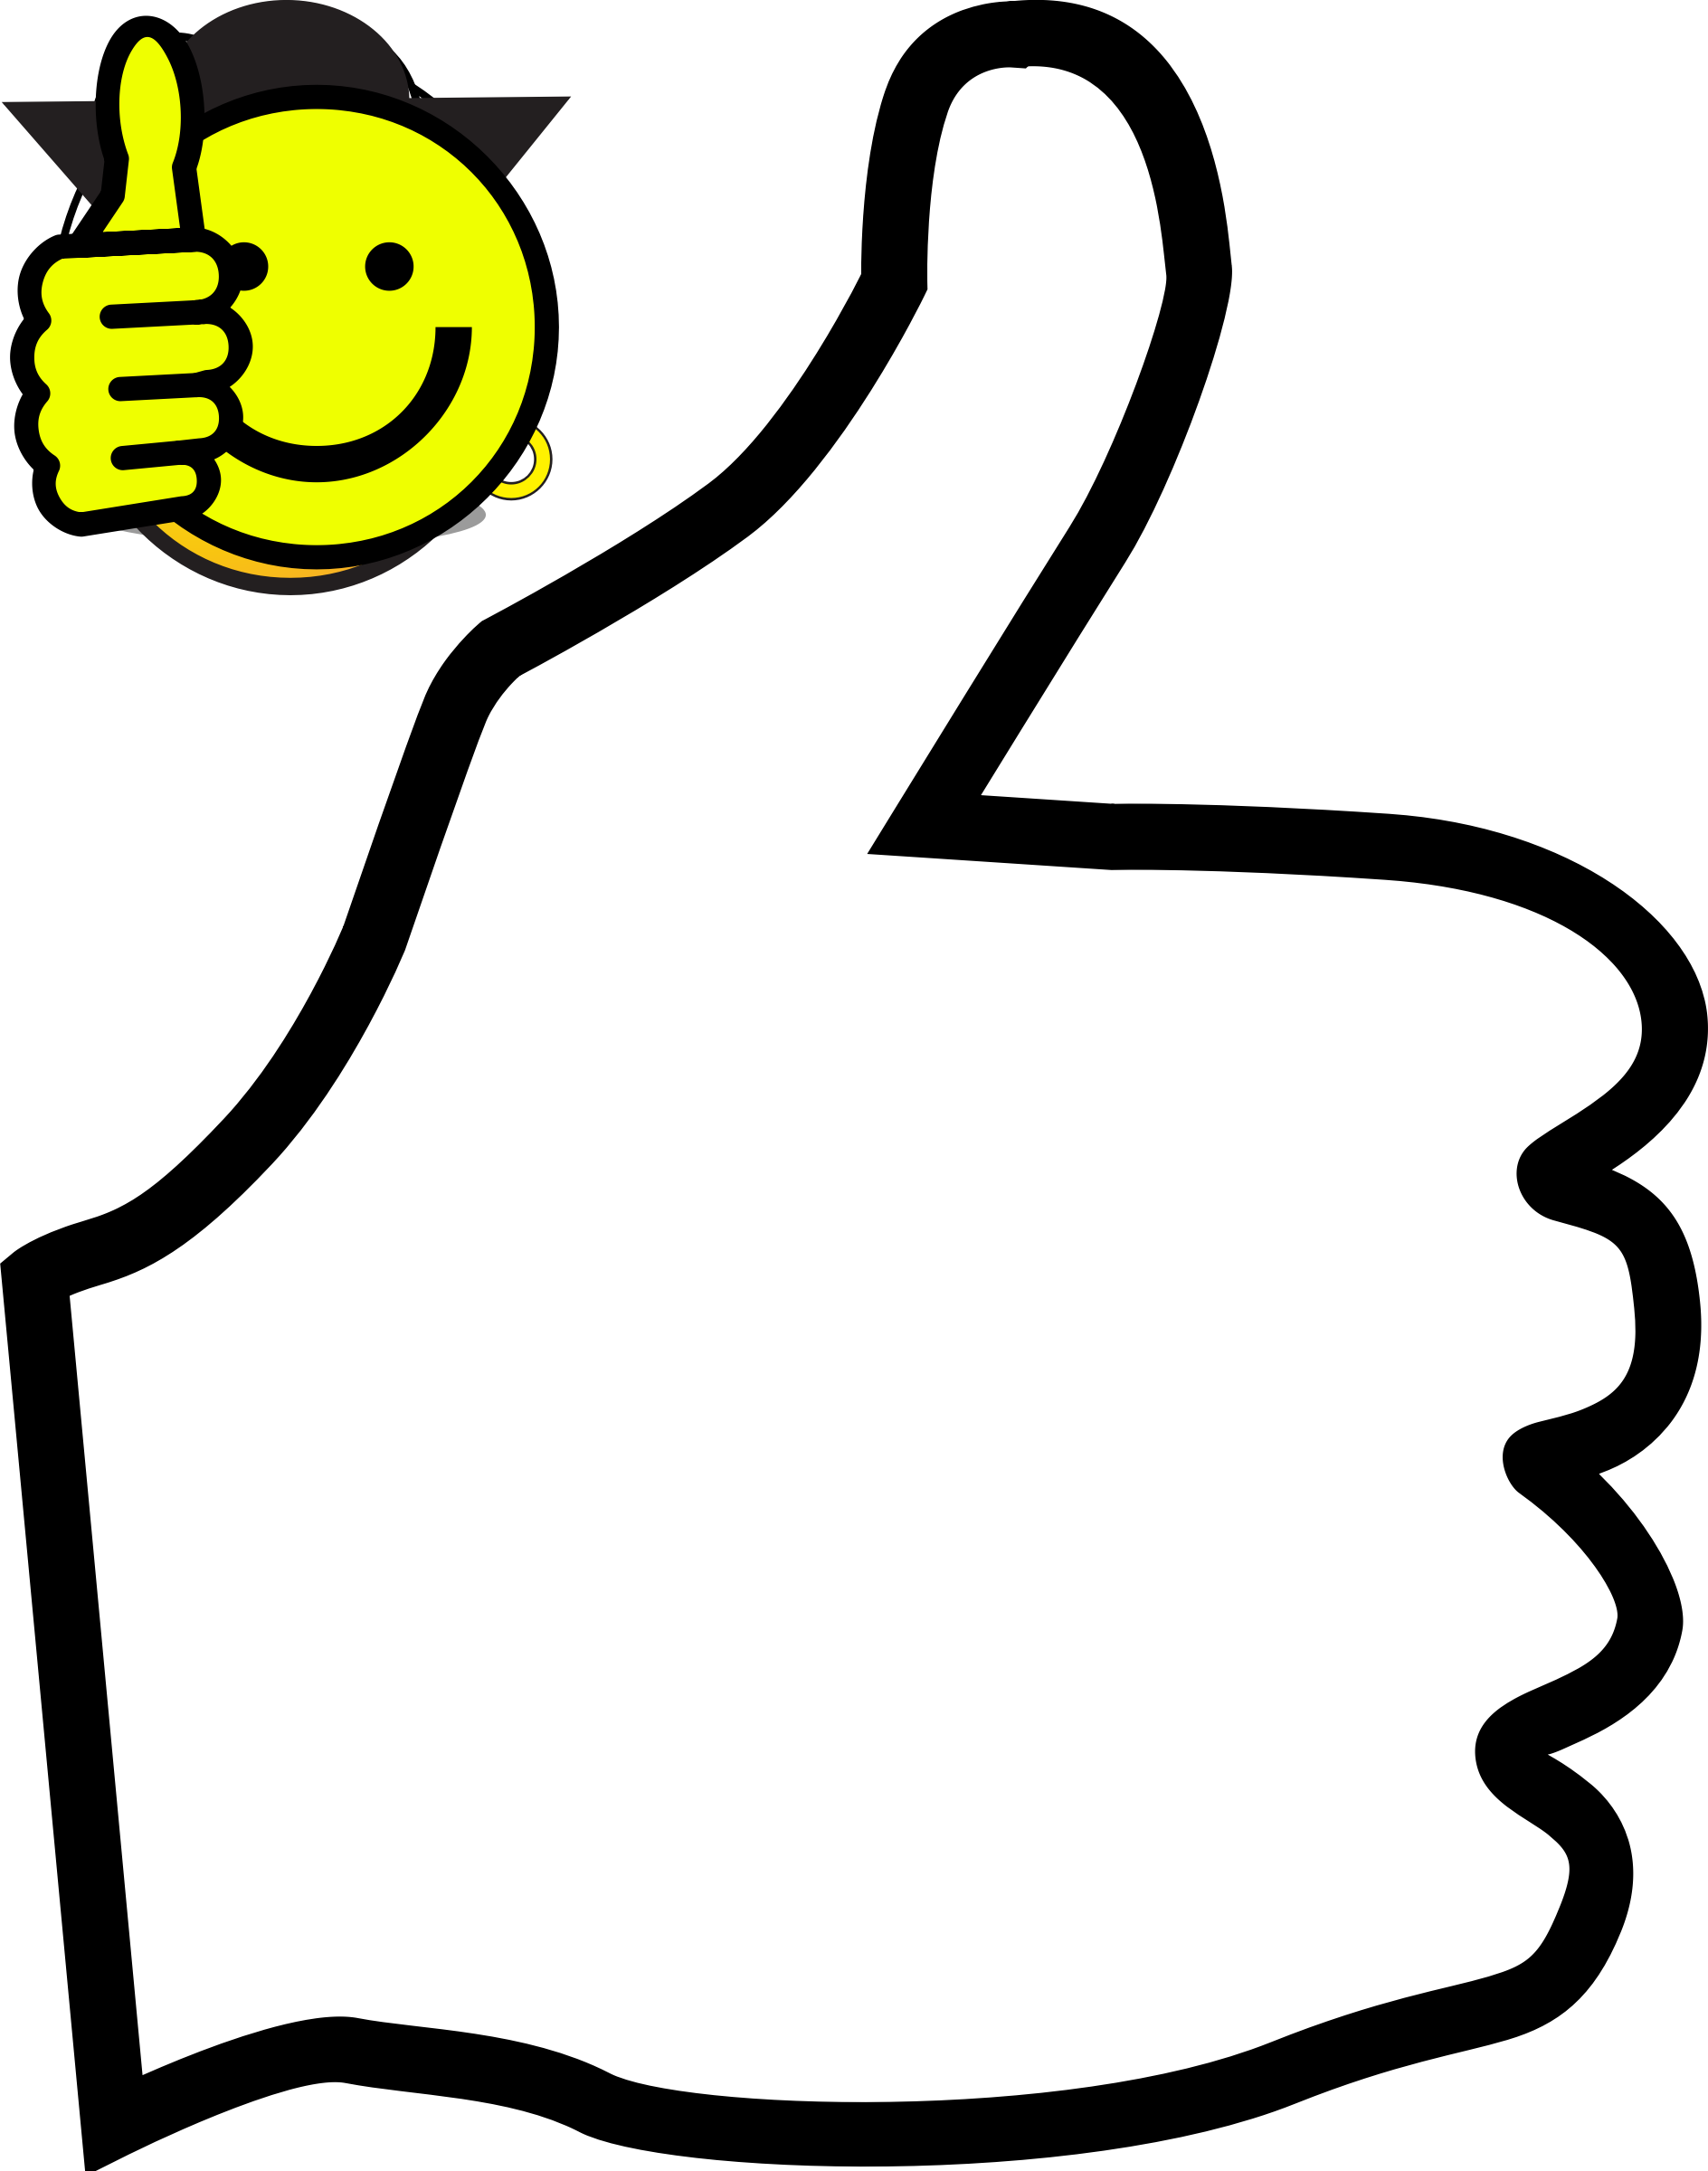 Thumbs up icon outline by pilgrim7001